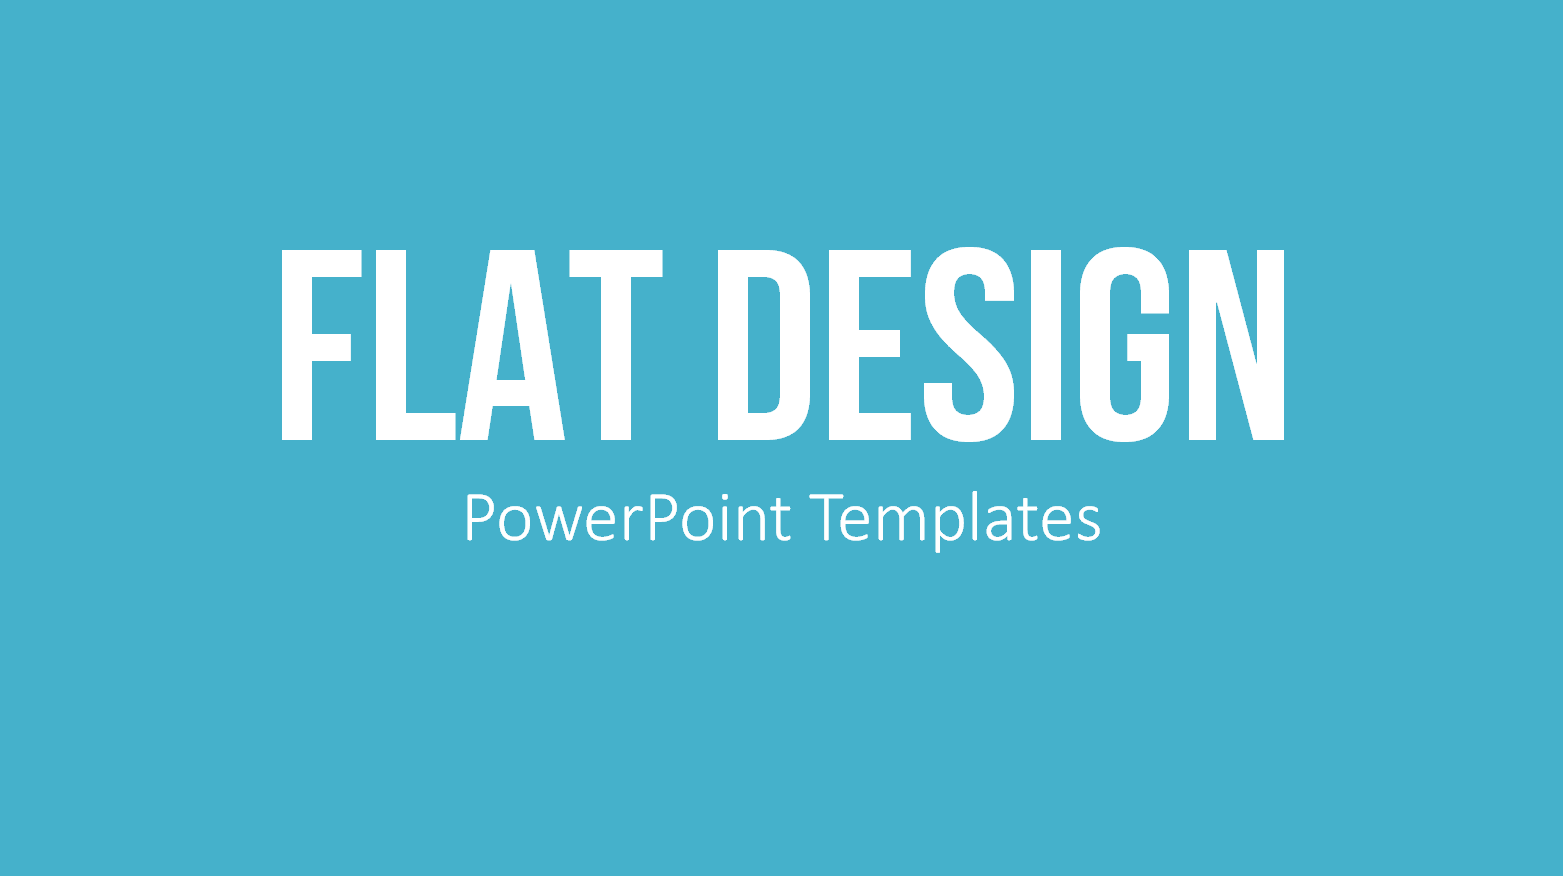 Upgrade your presentation with flat design graphics upgrade your presentation with flat design graphics presentationload blog toneelgroepblik Image collections